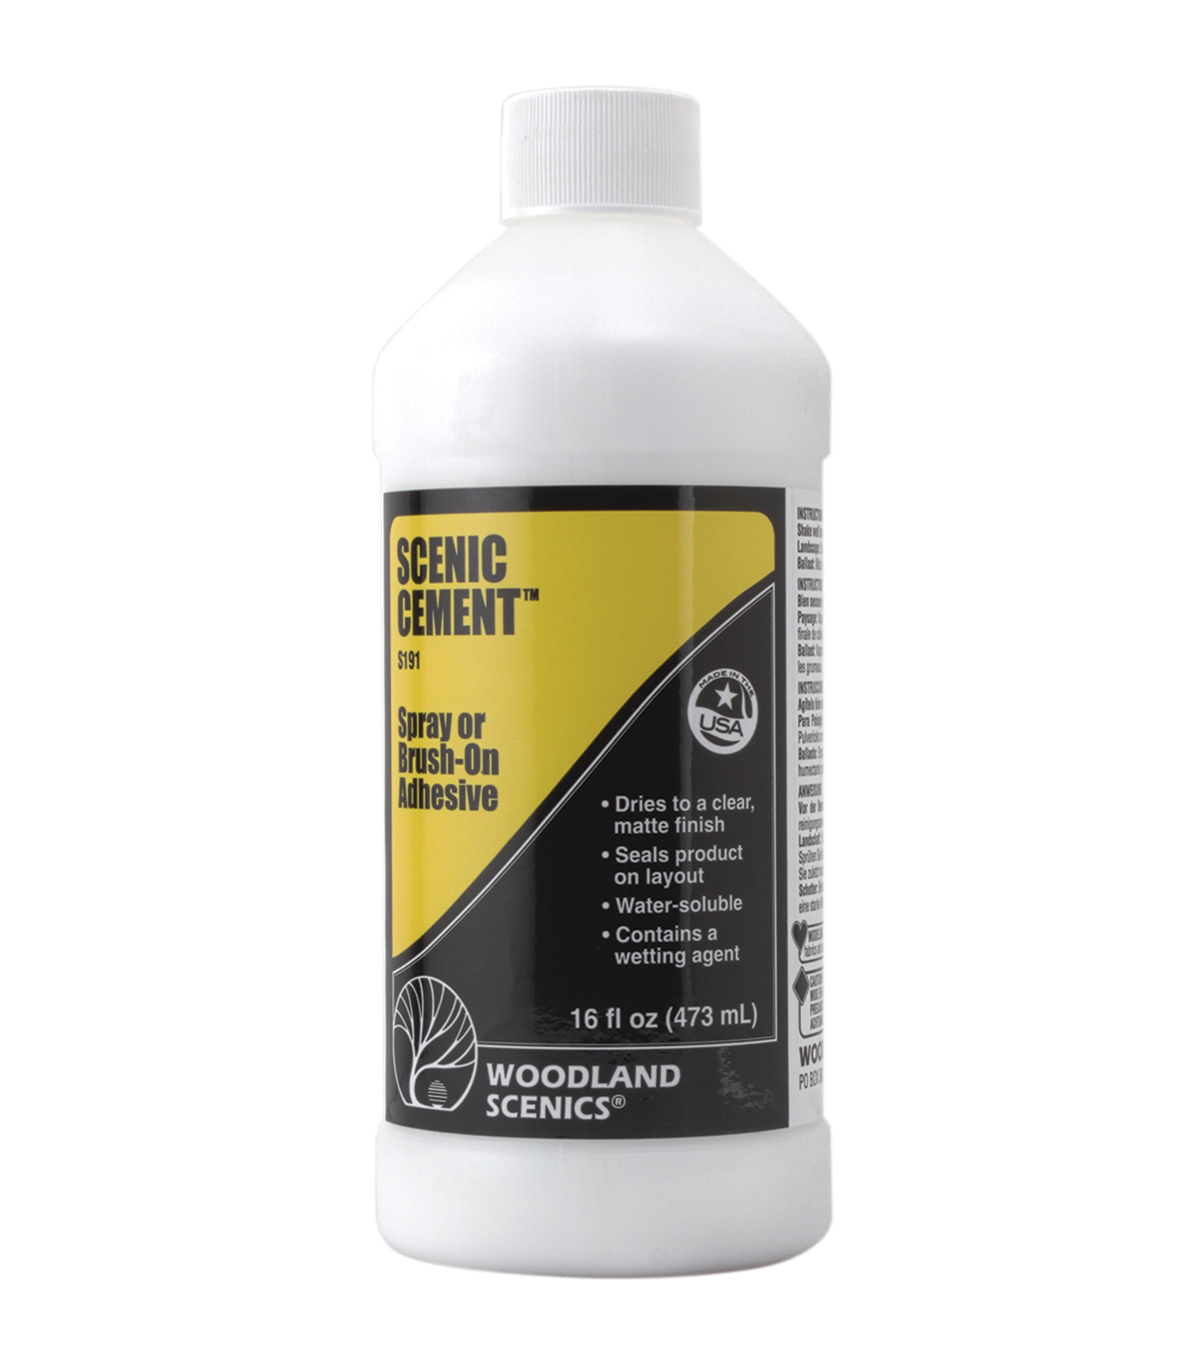 Woodland Scenics 16oz Scenic Cement